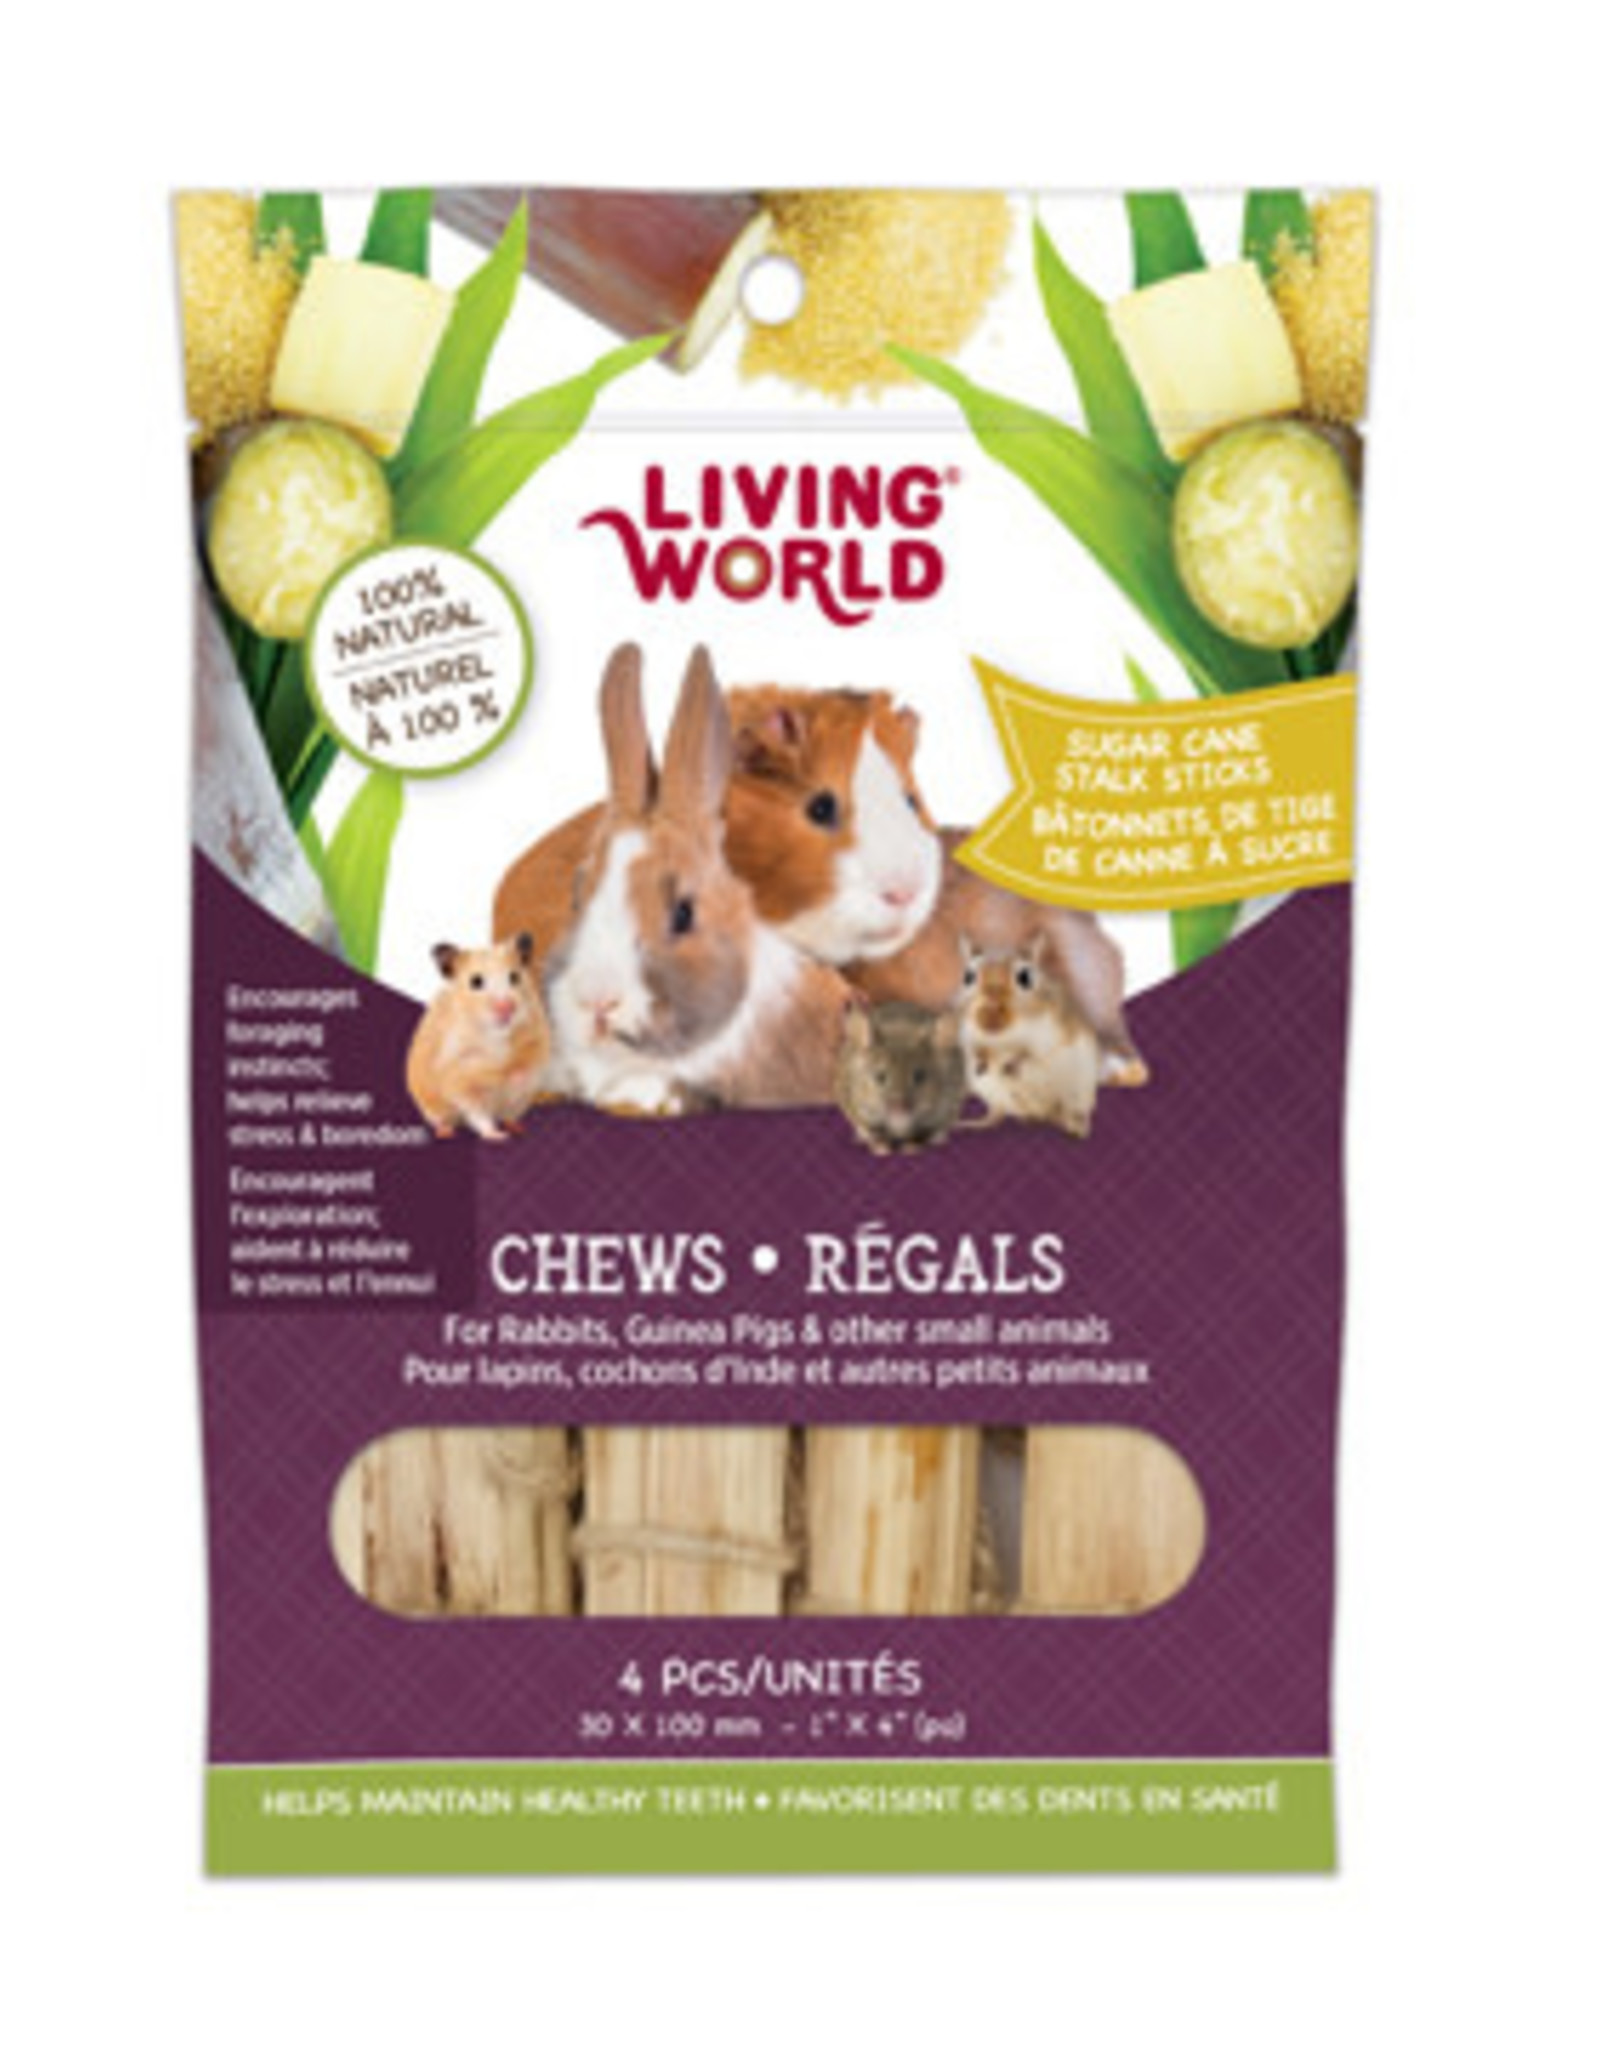 LIVING WORLD Living World Small Animal Chews - Sugarcane Stalk Sticks - 4 pieces